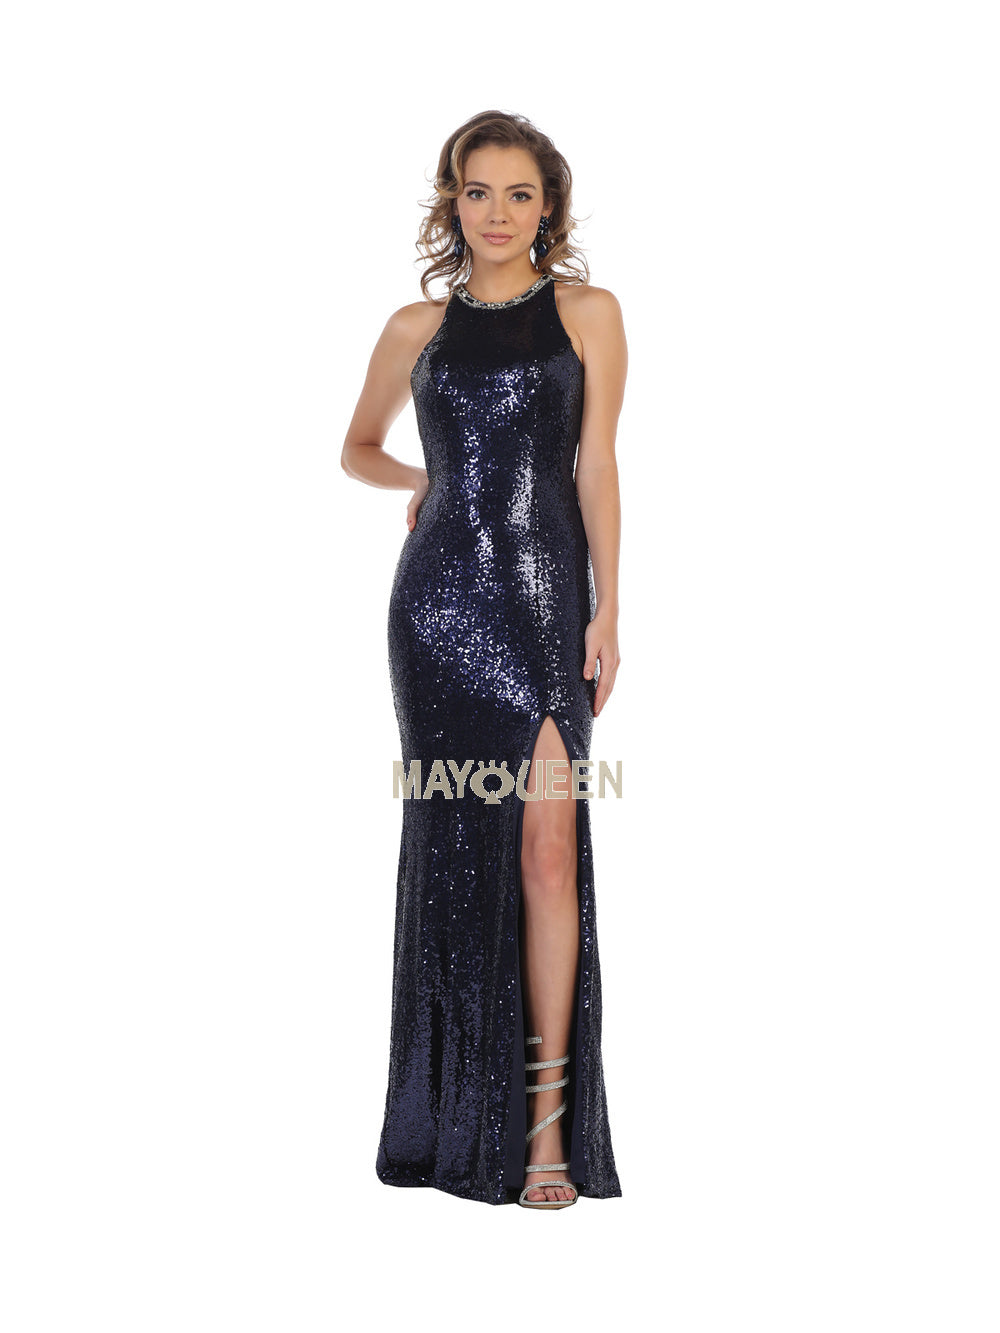 MQ 7656 - Crystal Trimmed Sequined High Slit Gown - Diggz Prom